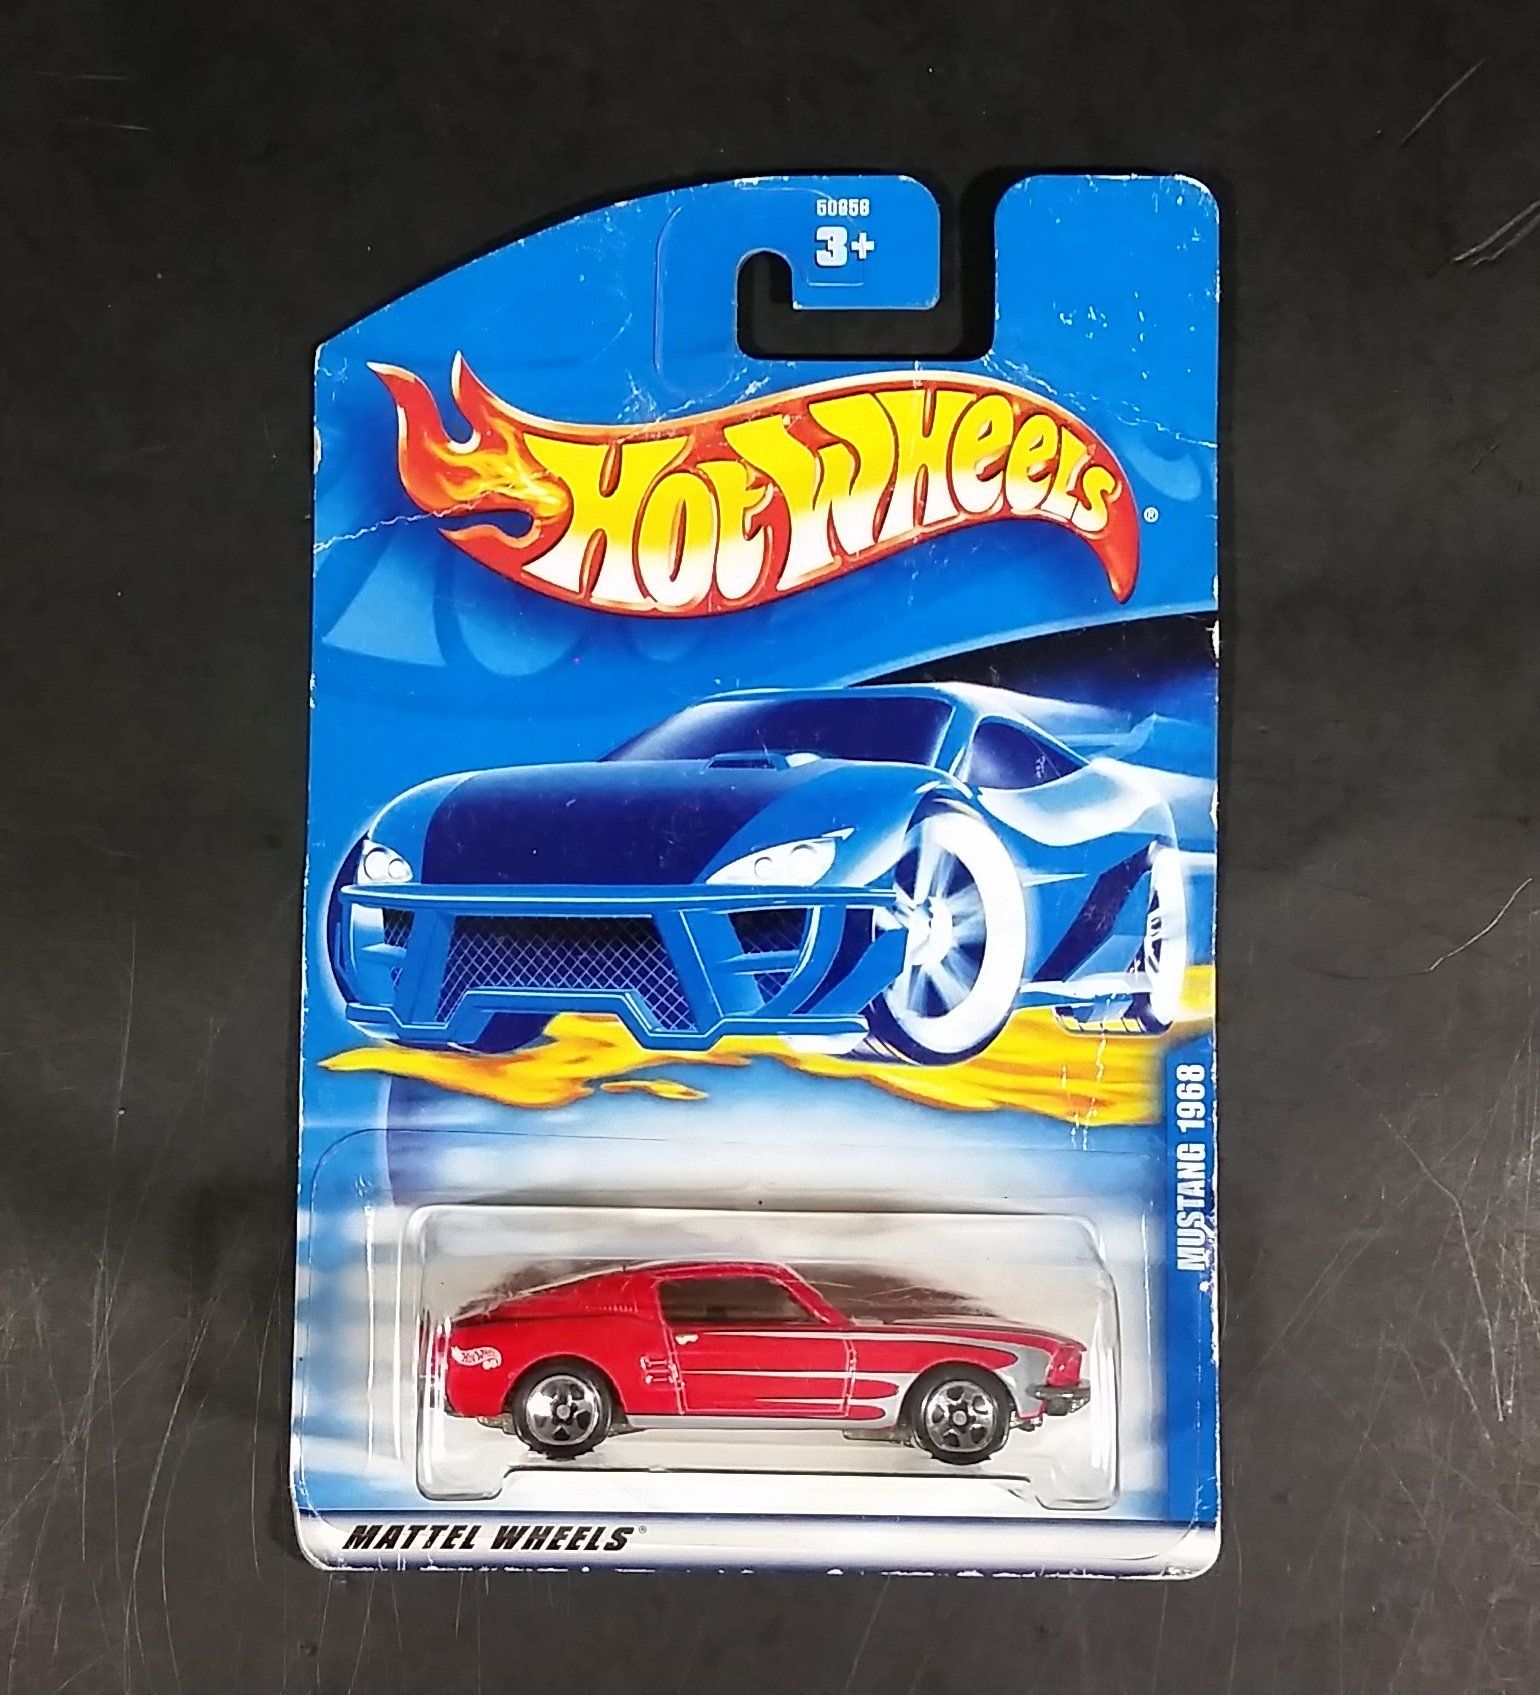 2001 Hot Wheels 1968 Ford Mustang Red Die Cast Toy Car 126 50656 New W Blue Card Opening Hood Https Treasurevalleyantique Mustang Mustang Cars Hot Wheels